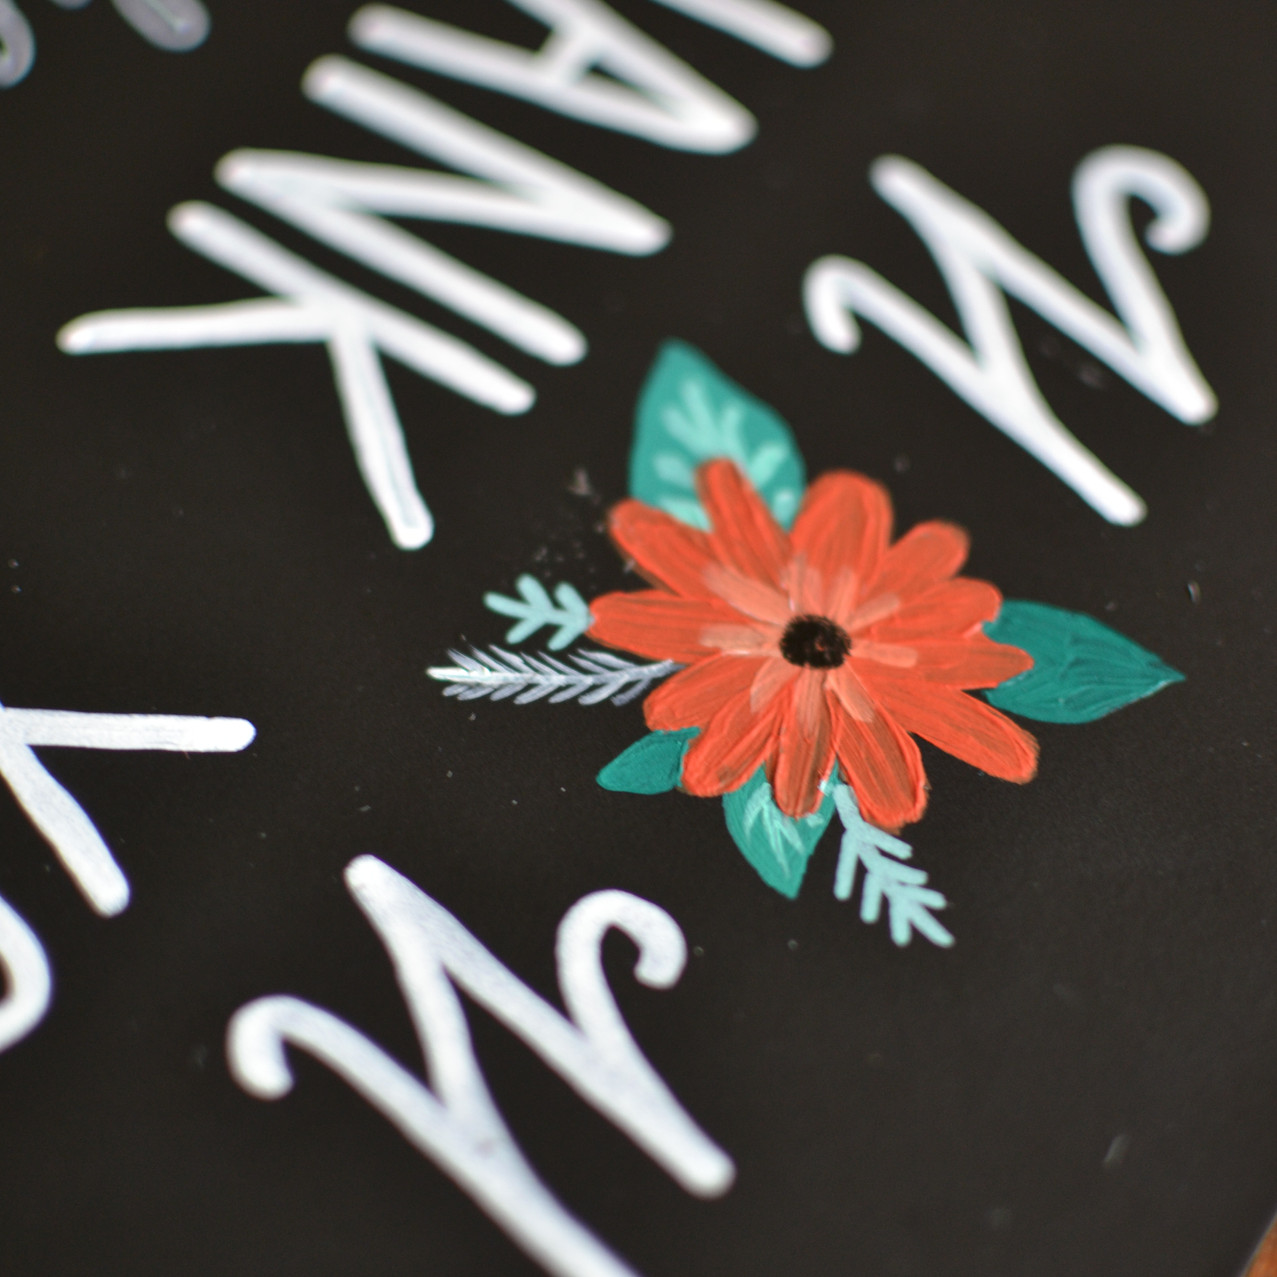 Wedding Chalkboard Signs - Hannah & Hampus (32)